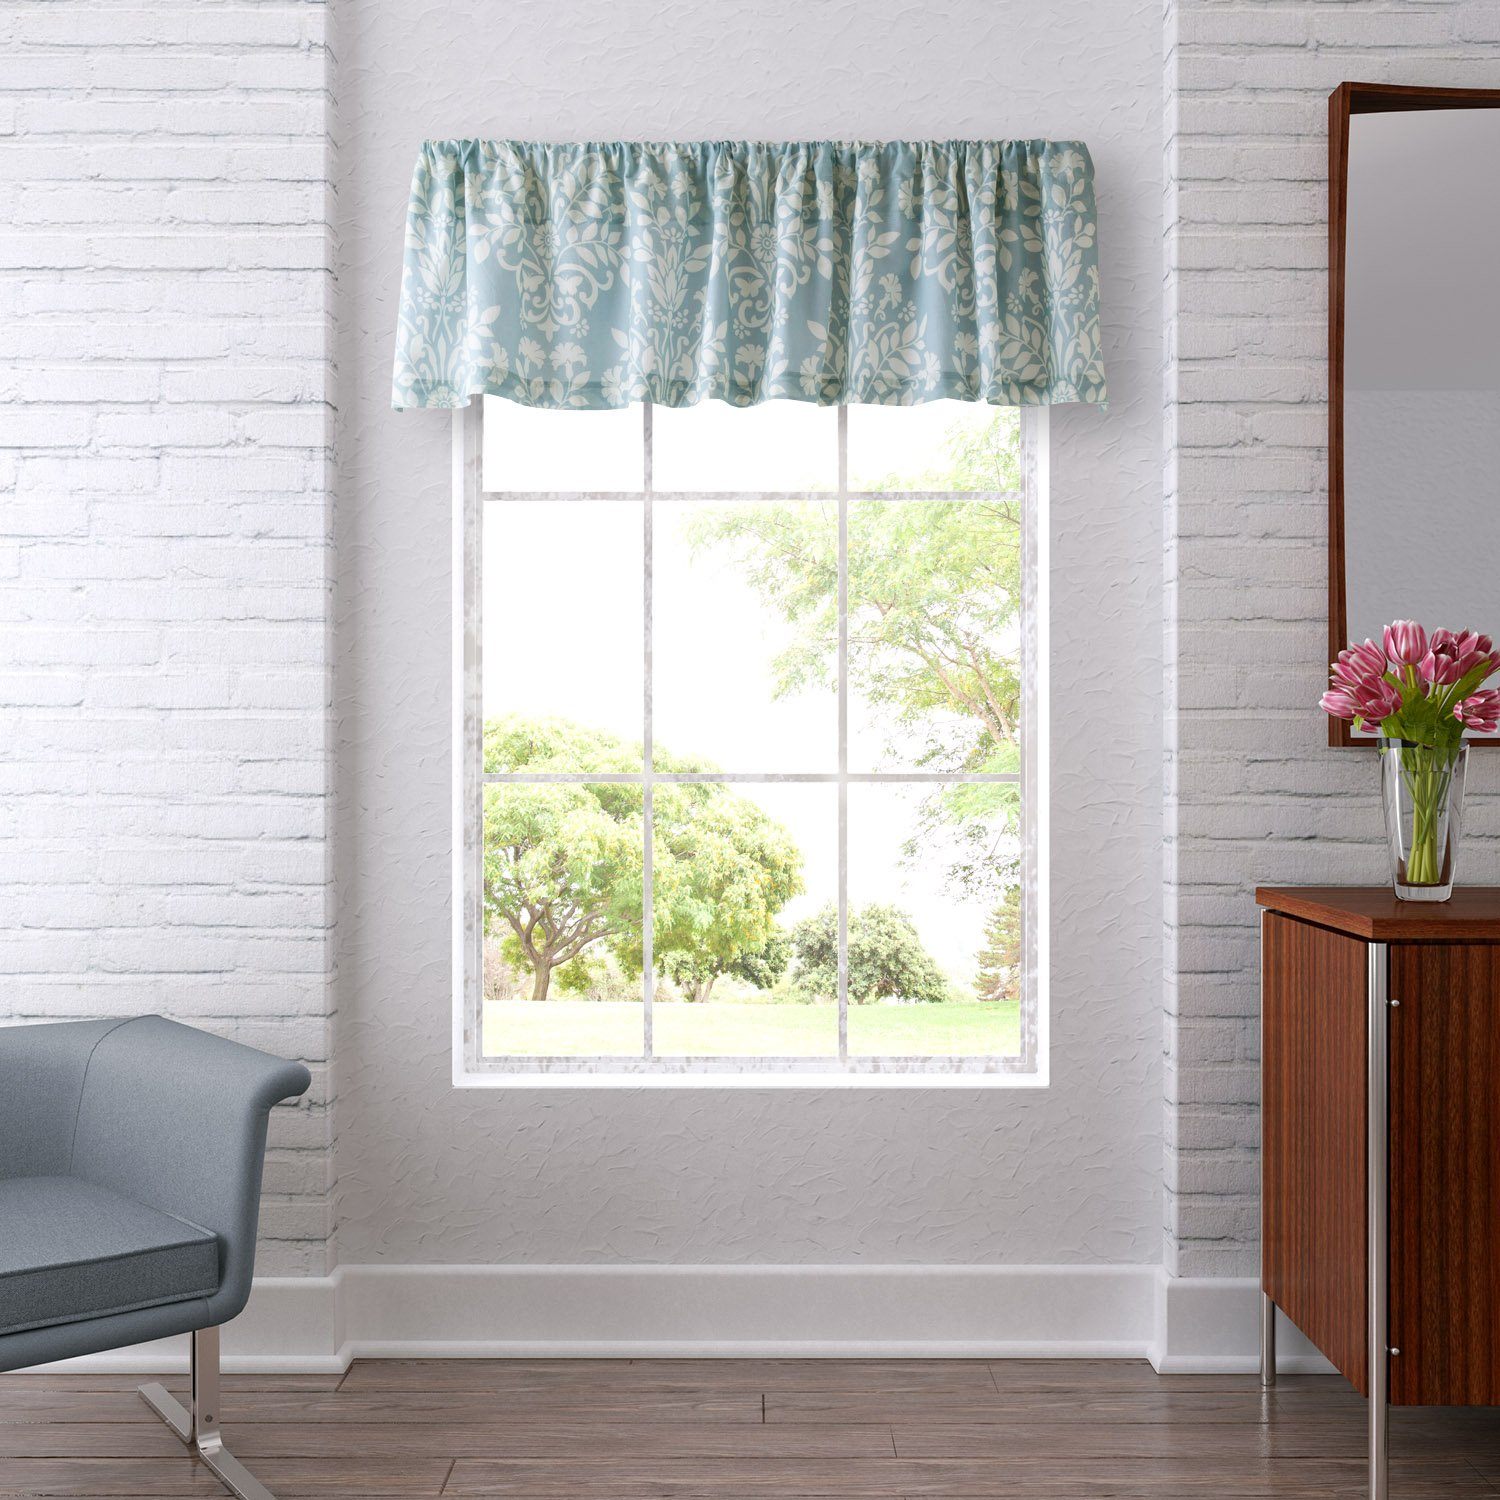 Amazon.com: Laura Ashley Rowland Breeze Valance: Home & Kitchen